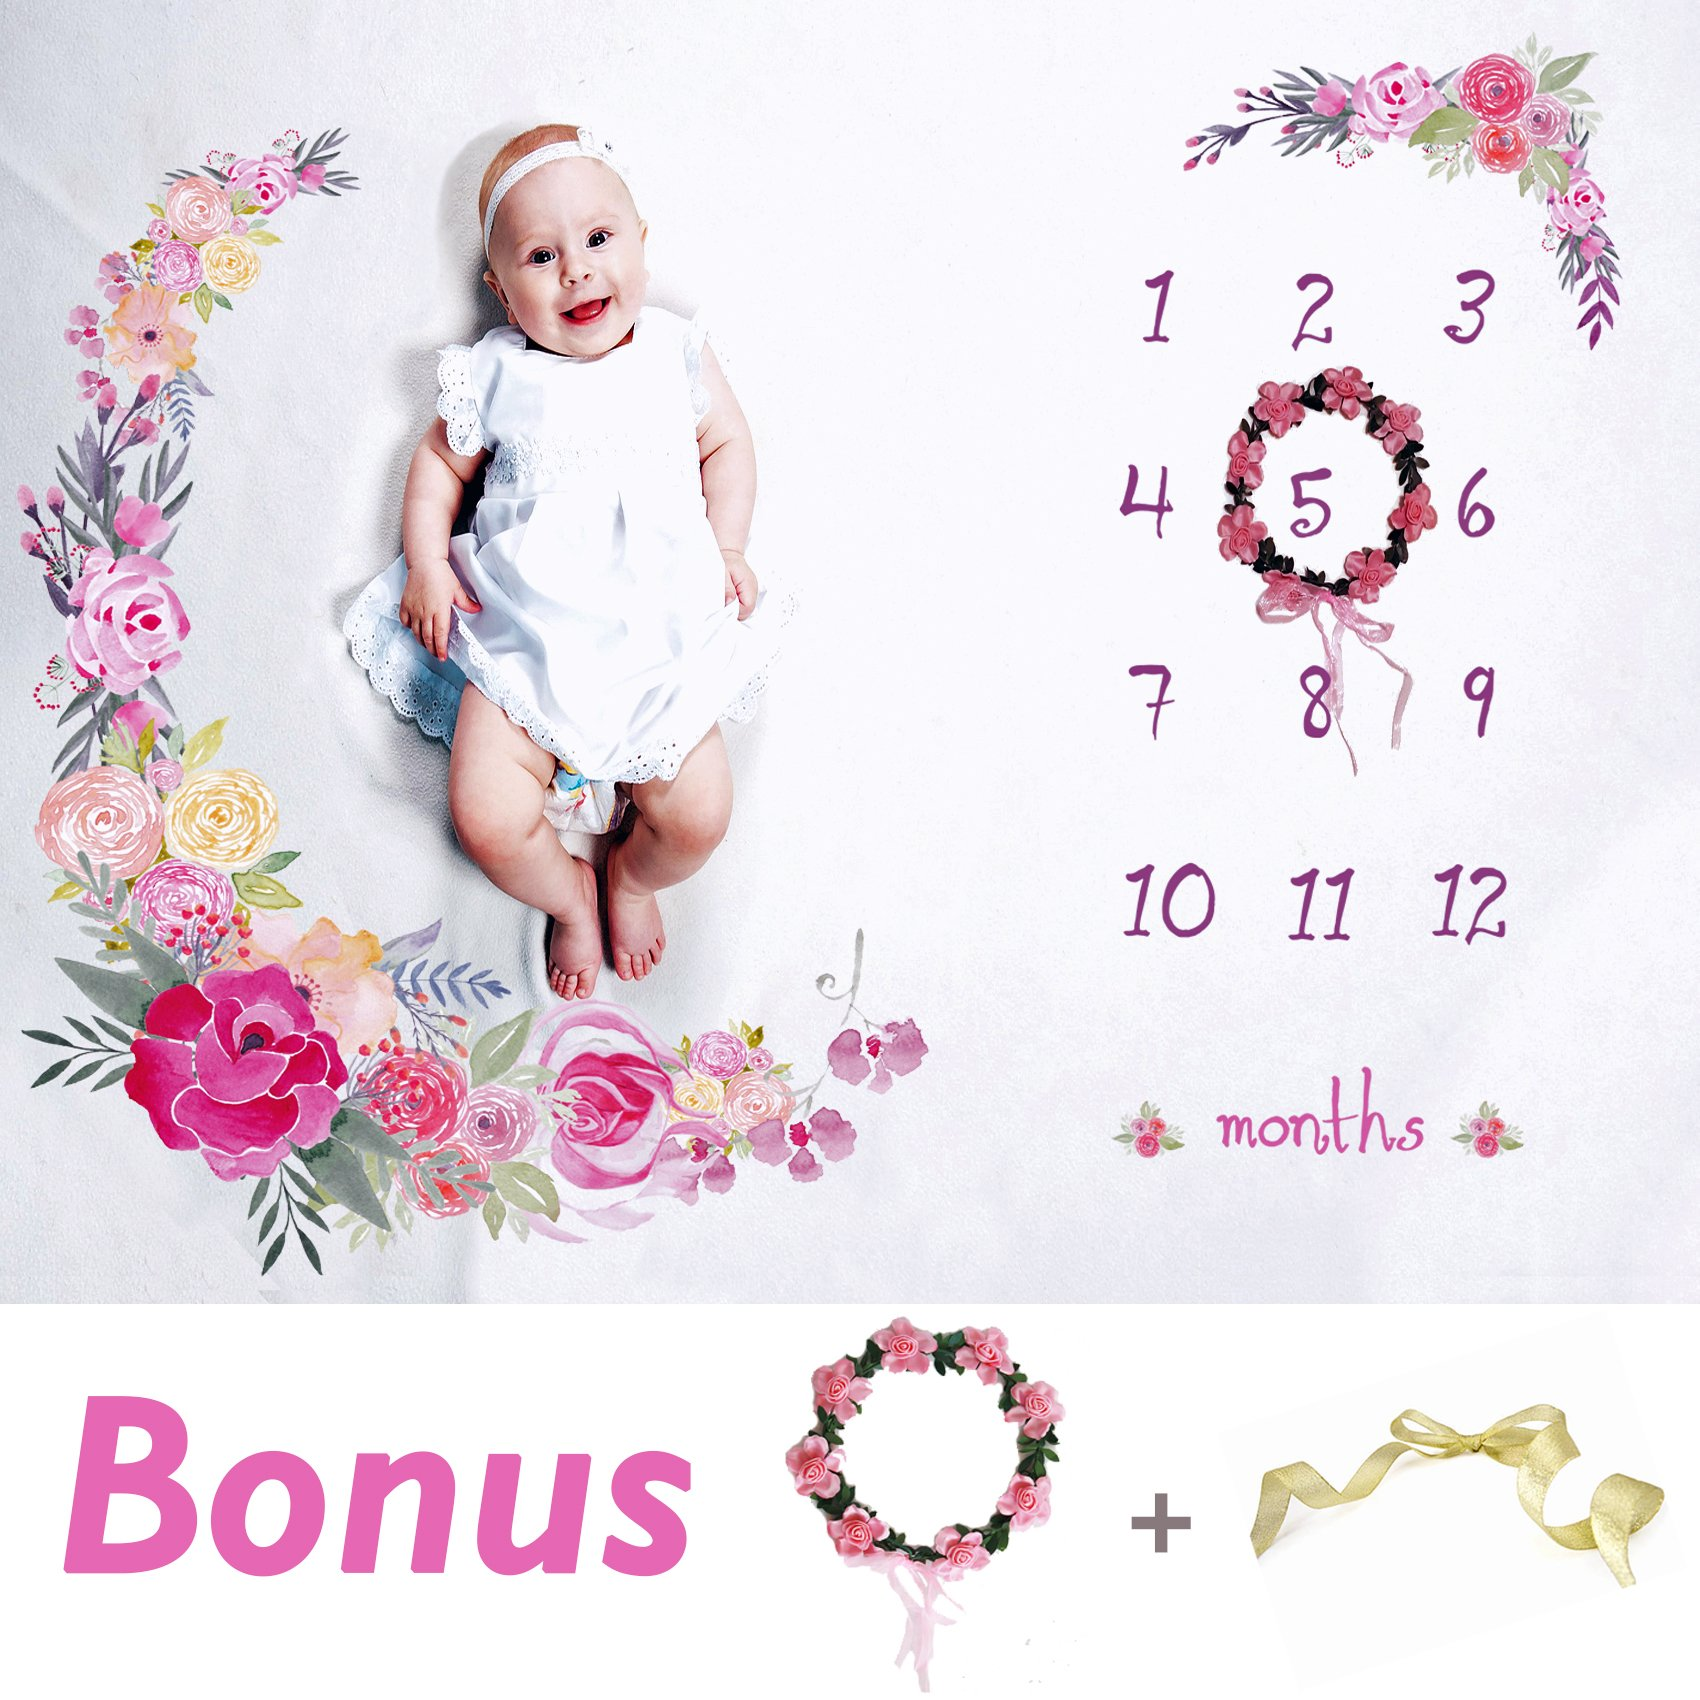 Baby Monthly Milestone Blanket Large 60''x40'' | Bonus Floral Wreath | Soft Photography Background Blanket | Newborn Girls or Boys Photo Prop | Best Baby Shower Gift for New Mom | Months Watch Me Grow